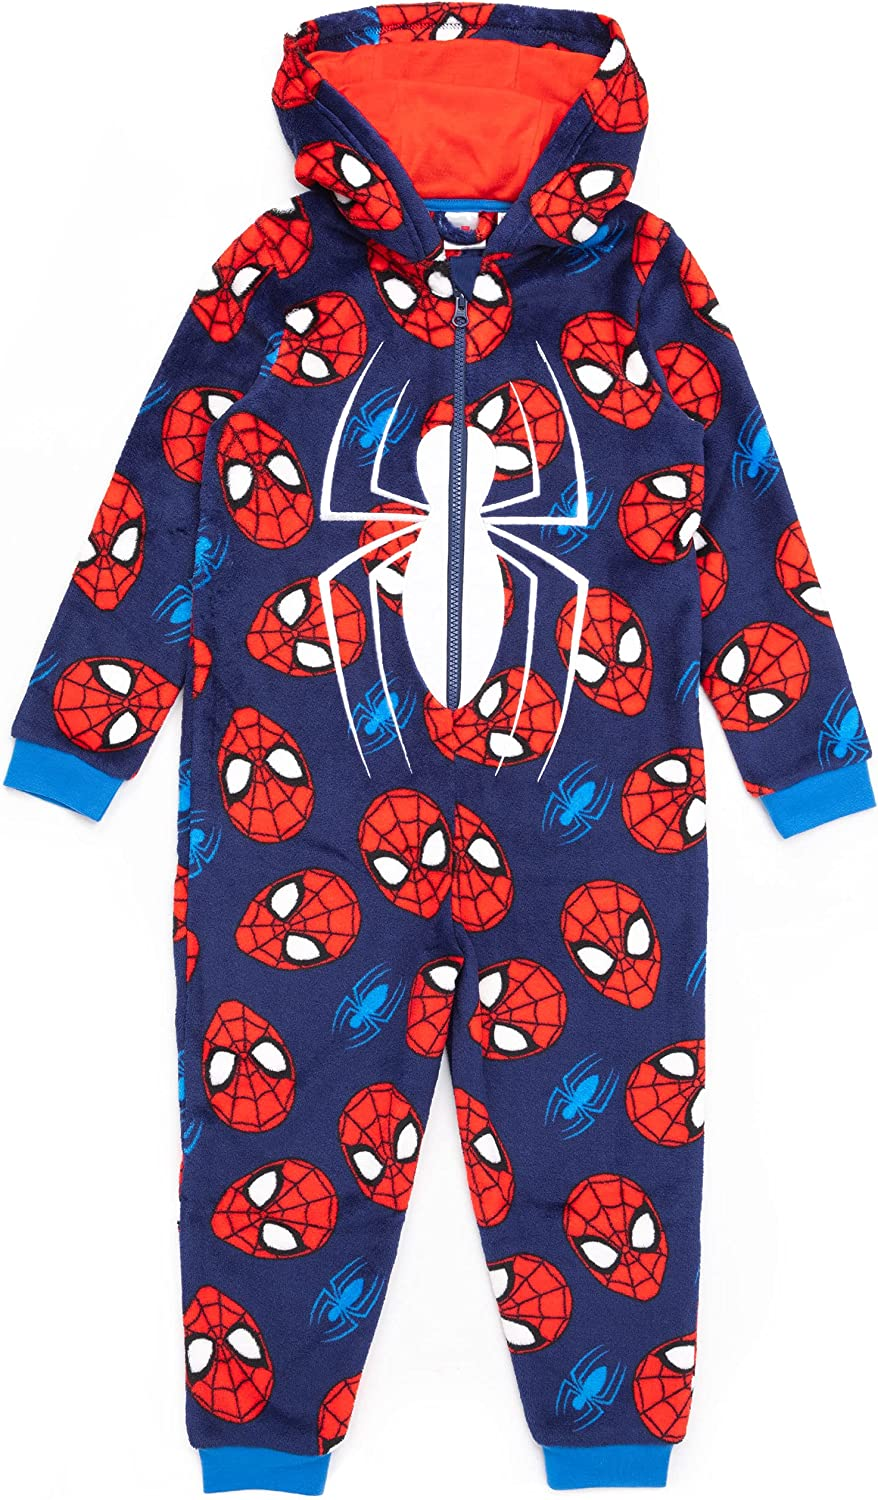 Marvel Safety and trust Spider-Man Onesie Pyjamas Boys 70% OFF Outlet Character Kids P Superhero